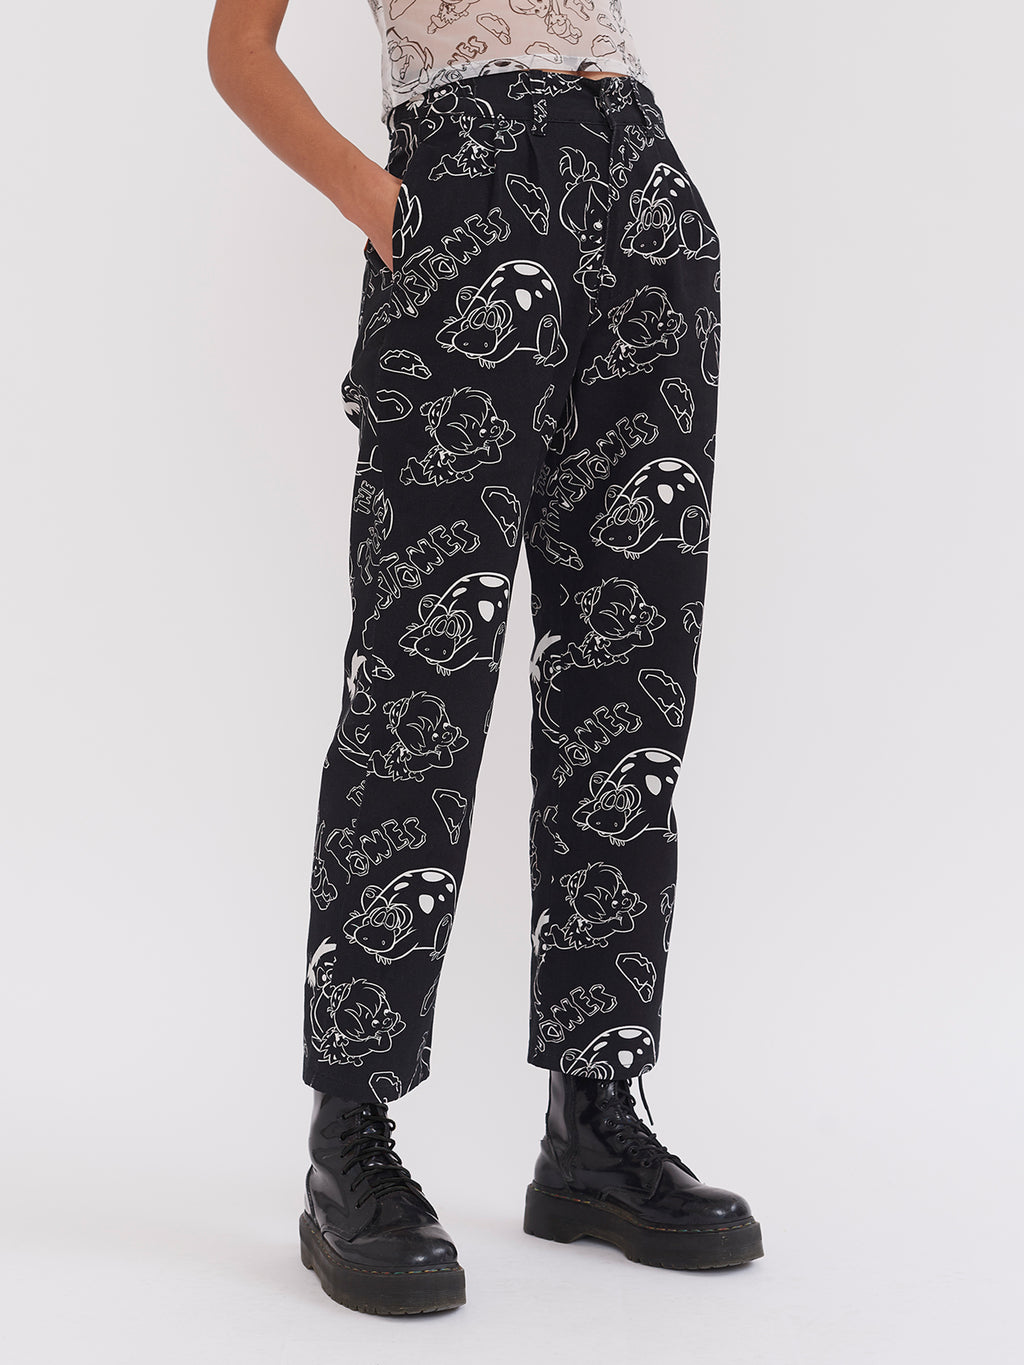 Lazy Oaf x The Flintstones Unisex Character Pants